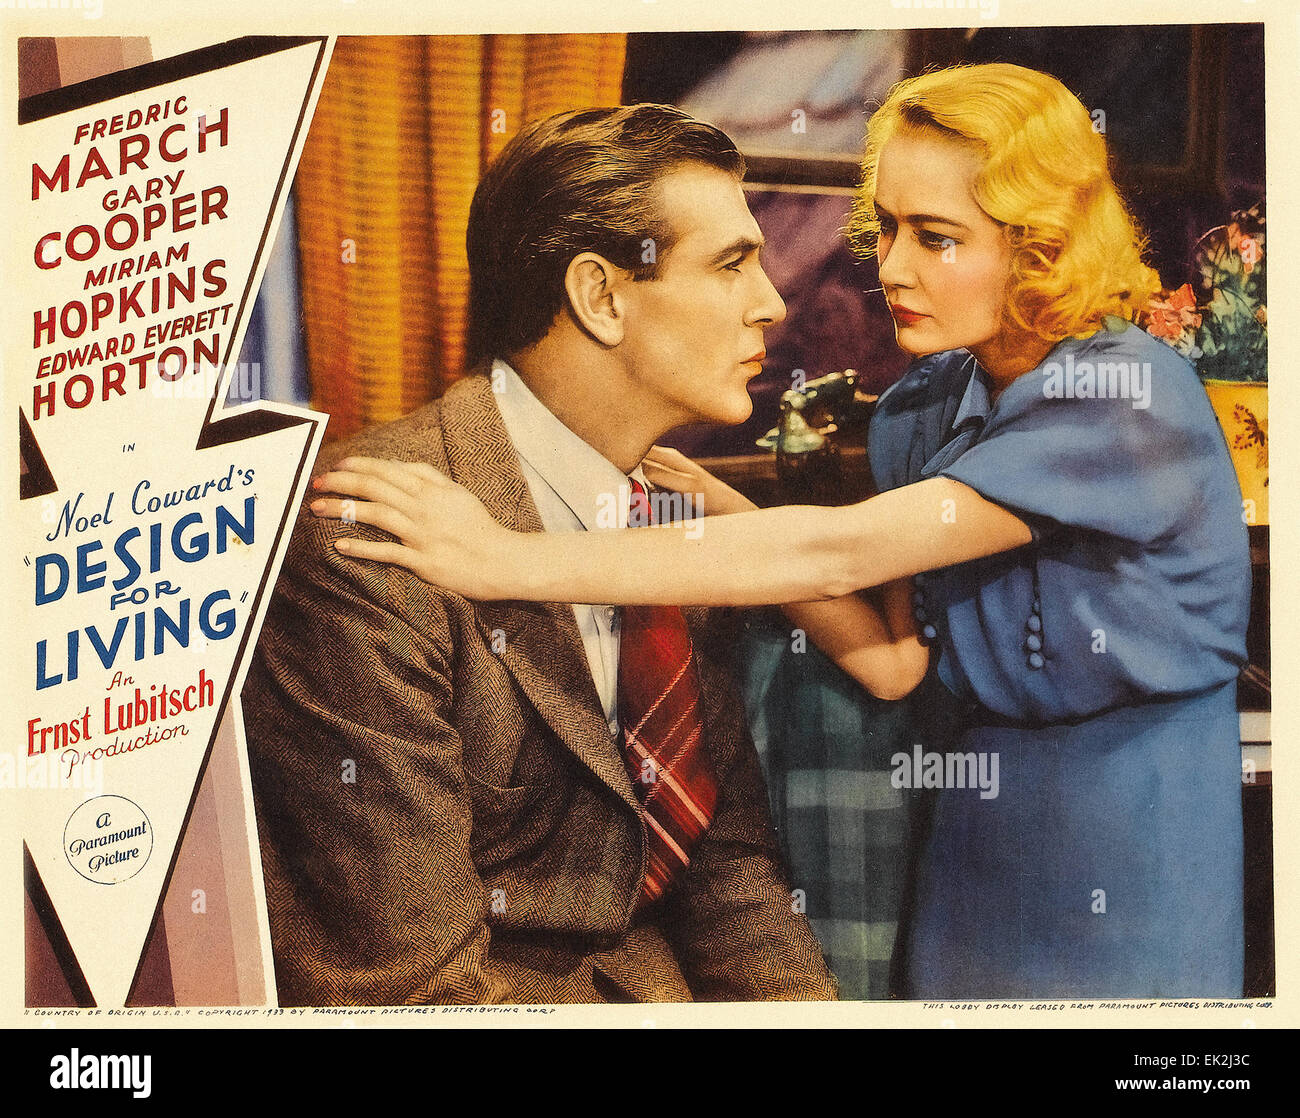 Design for Living - Movie Poster - Stock Image